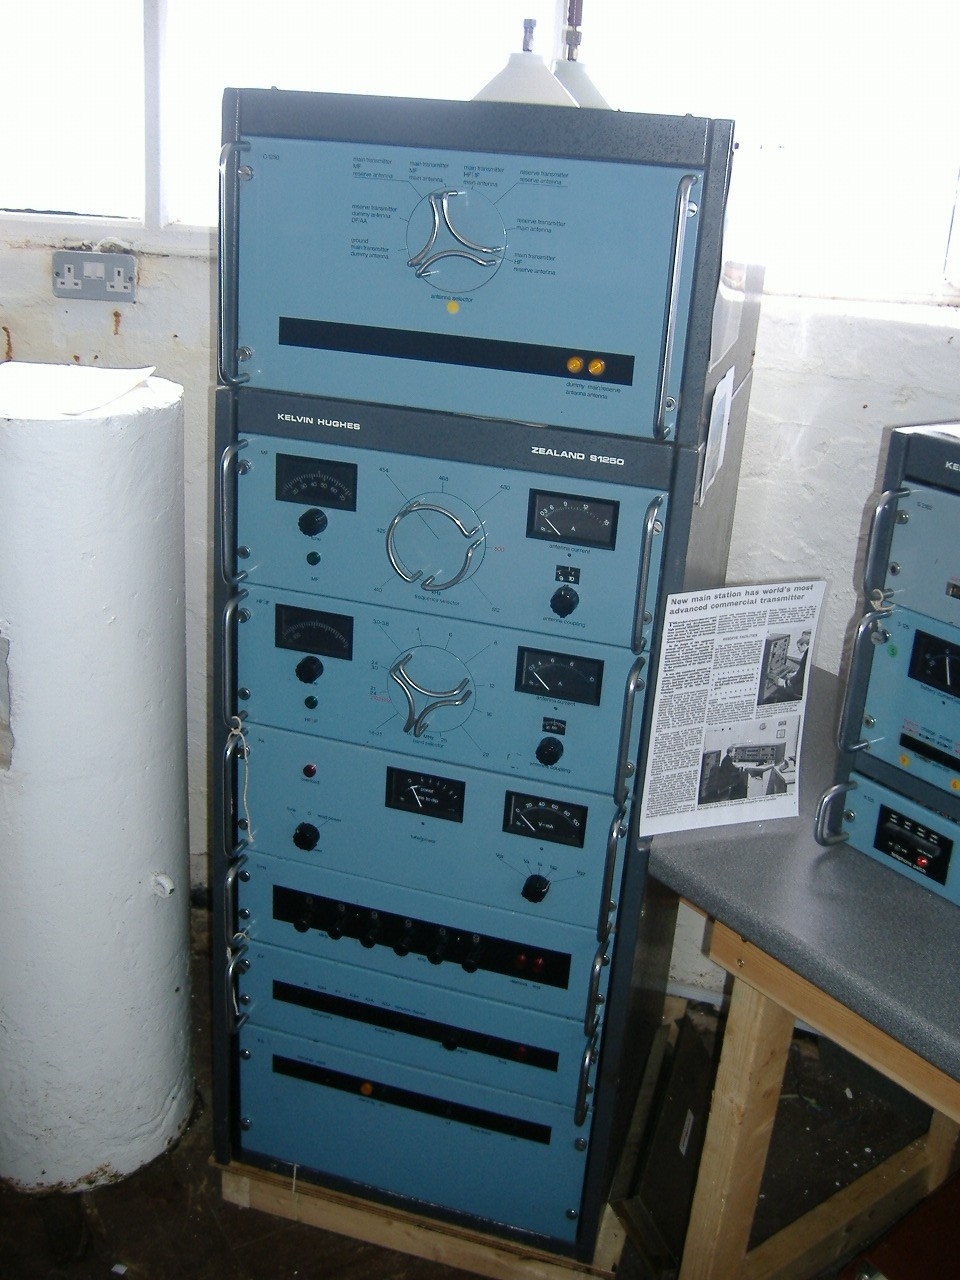 Kelvin Hughes Zealand S1250 Main Transmitter